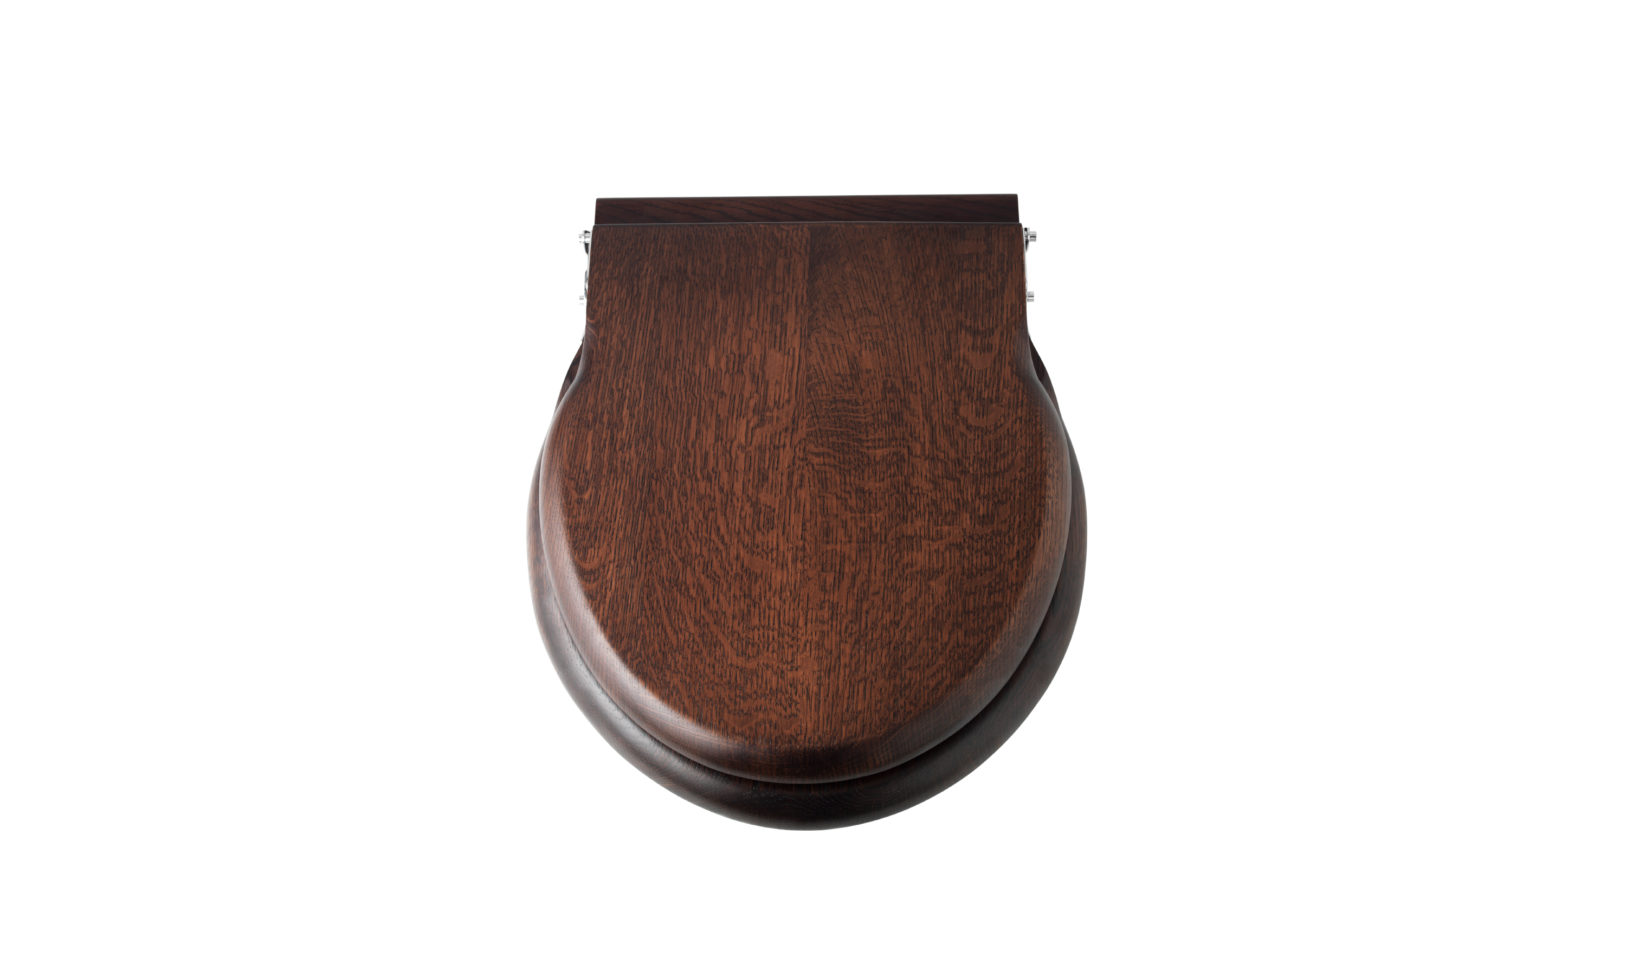 Standard Loo Seat For Rother Pan